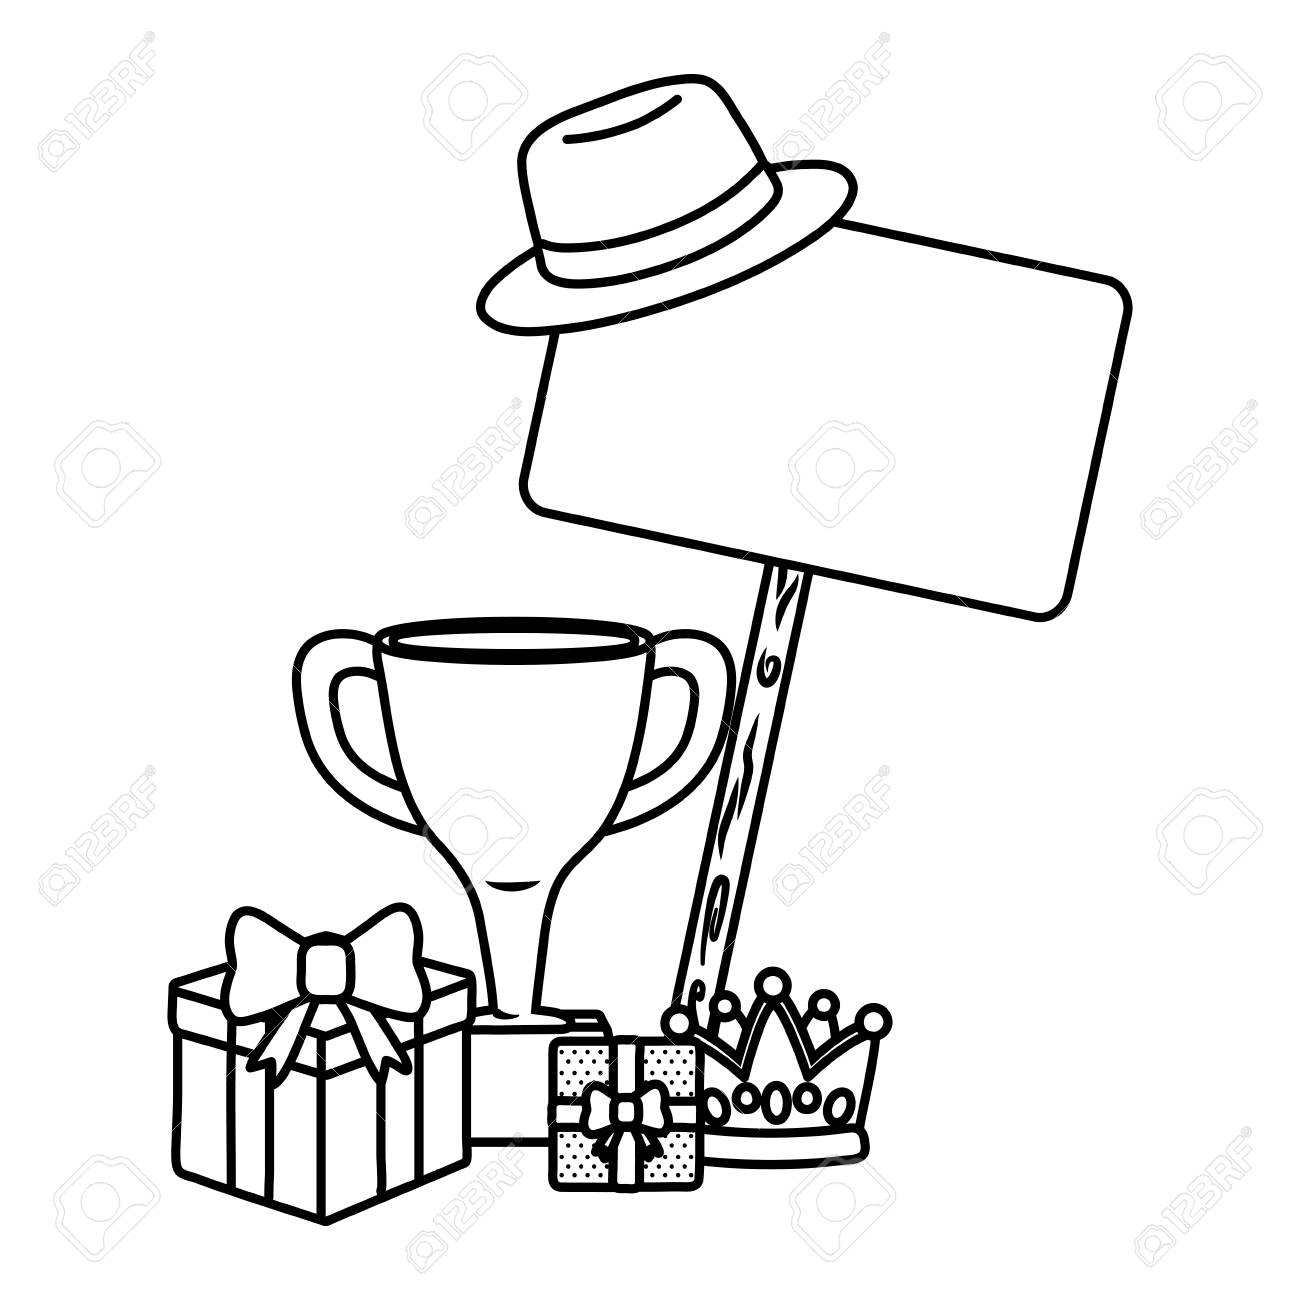 Gift Boxes With Trophy Crown Hat And Signboard Icon Cartoon Black Royalty Free Cliparts Vectors And Stock Illustration Image 122829554 See cartoon hat stock video clips. 123rf com